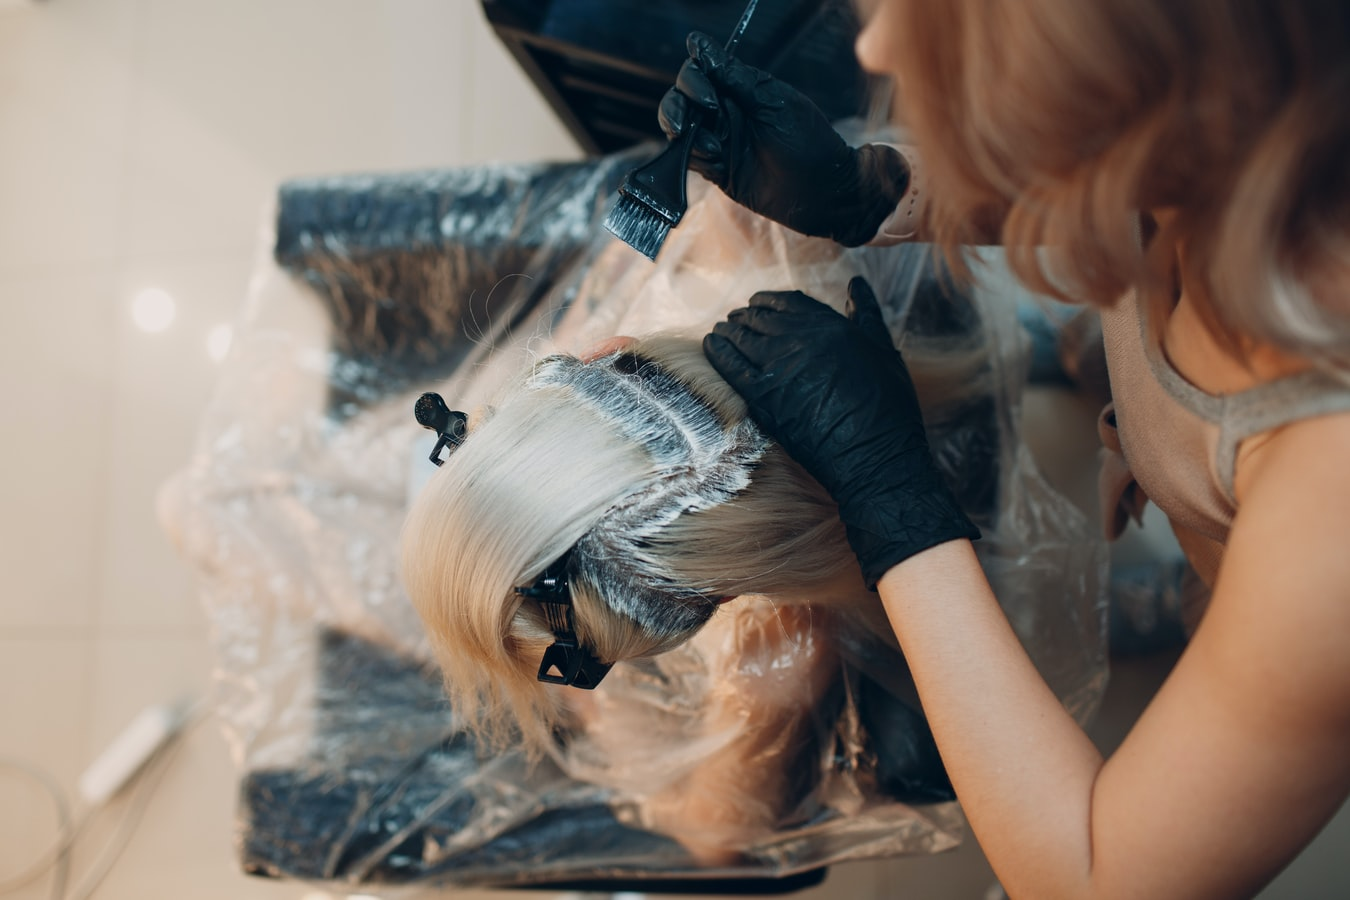 Why to Apply Bleach When Dyeing Hair